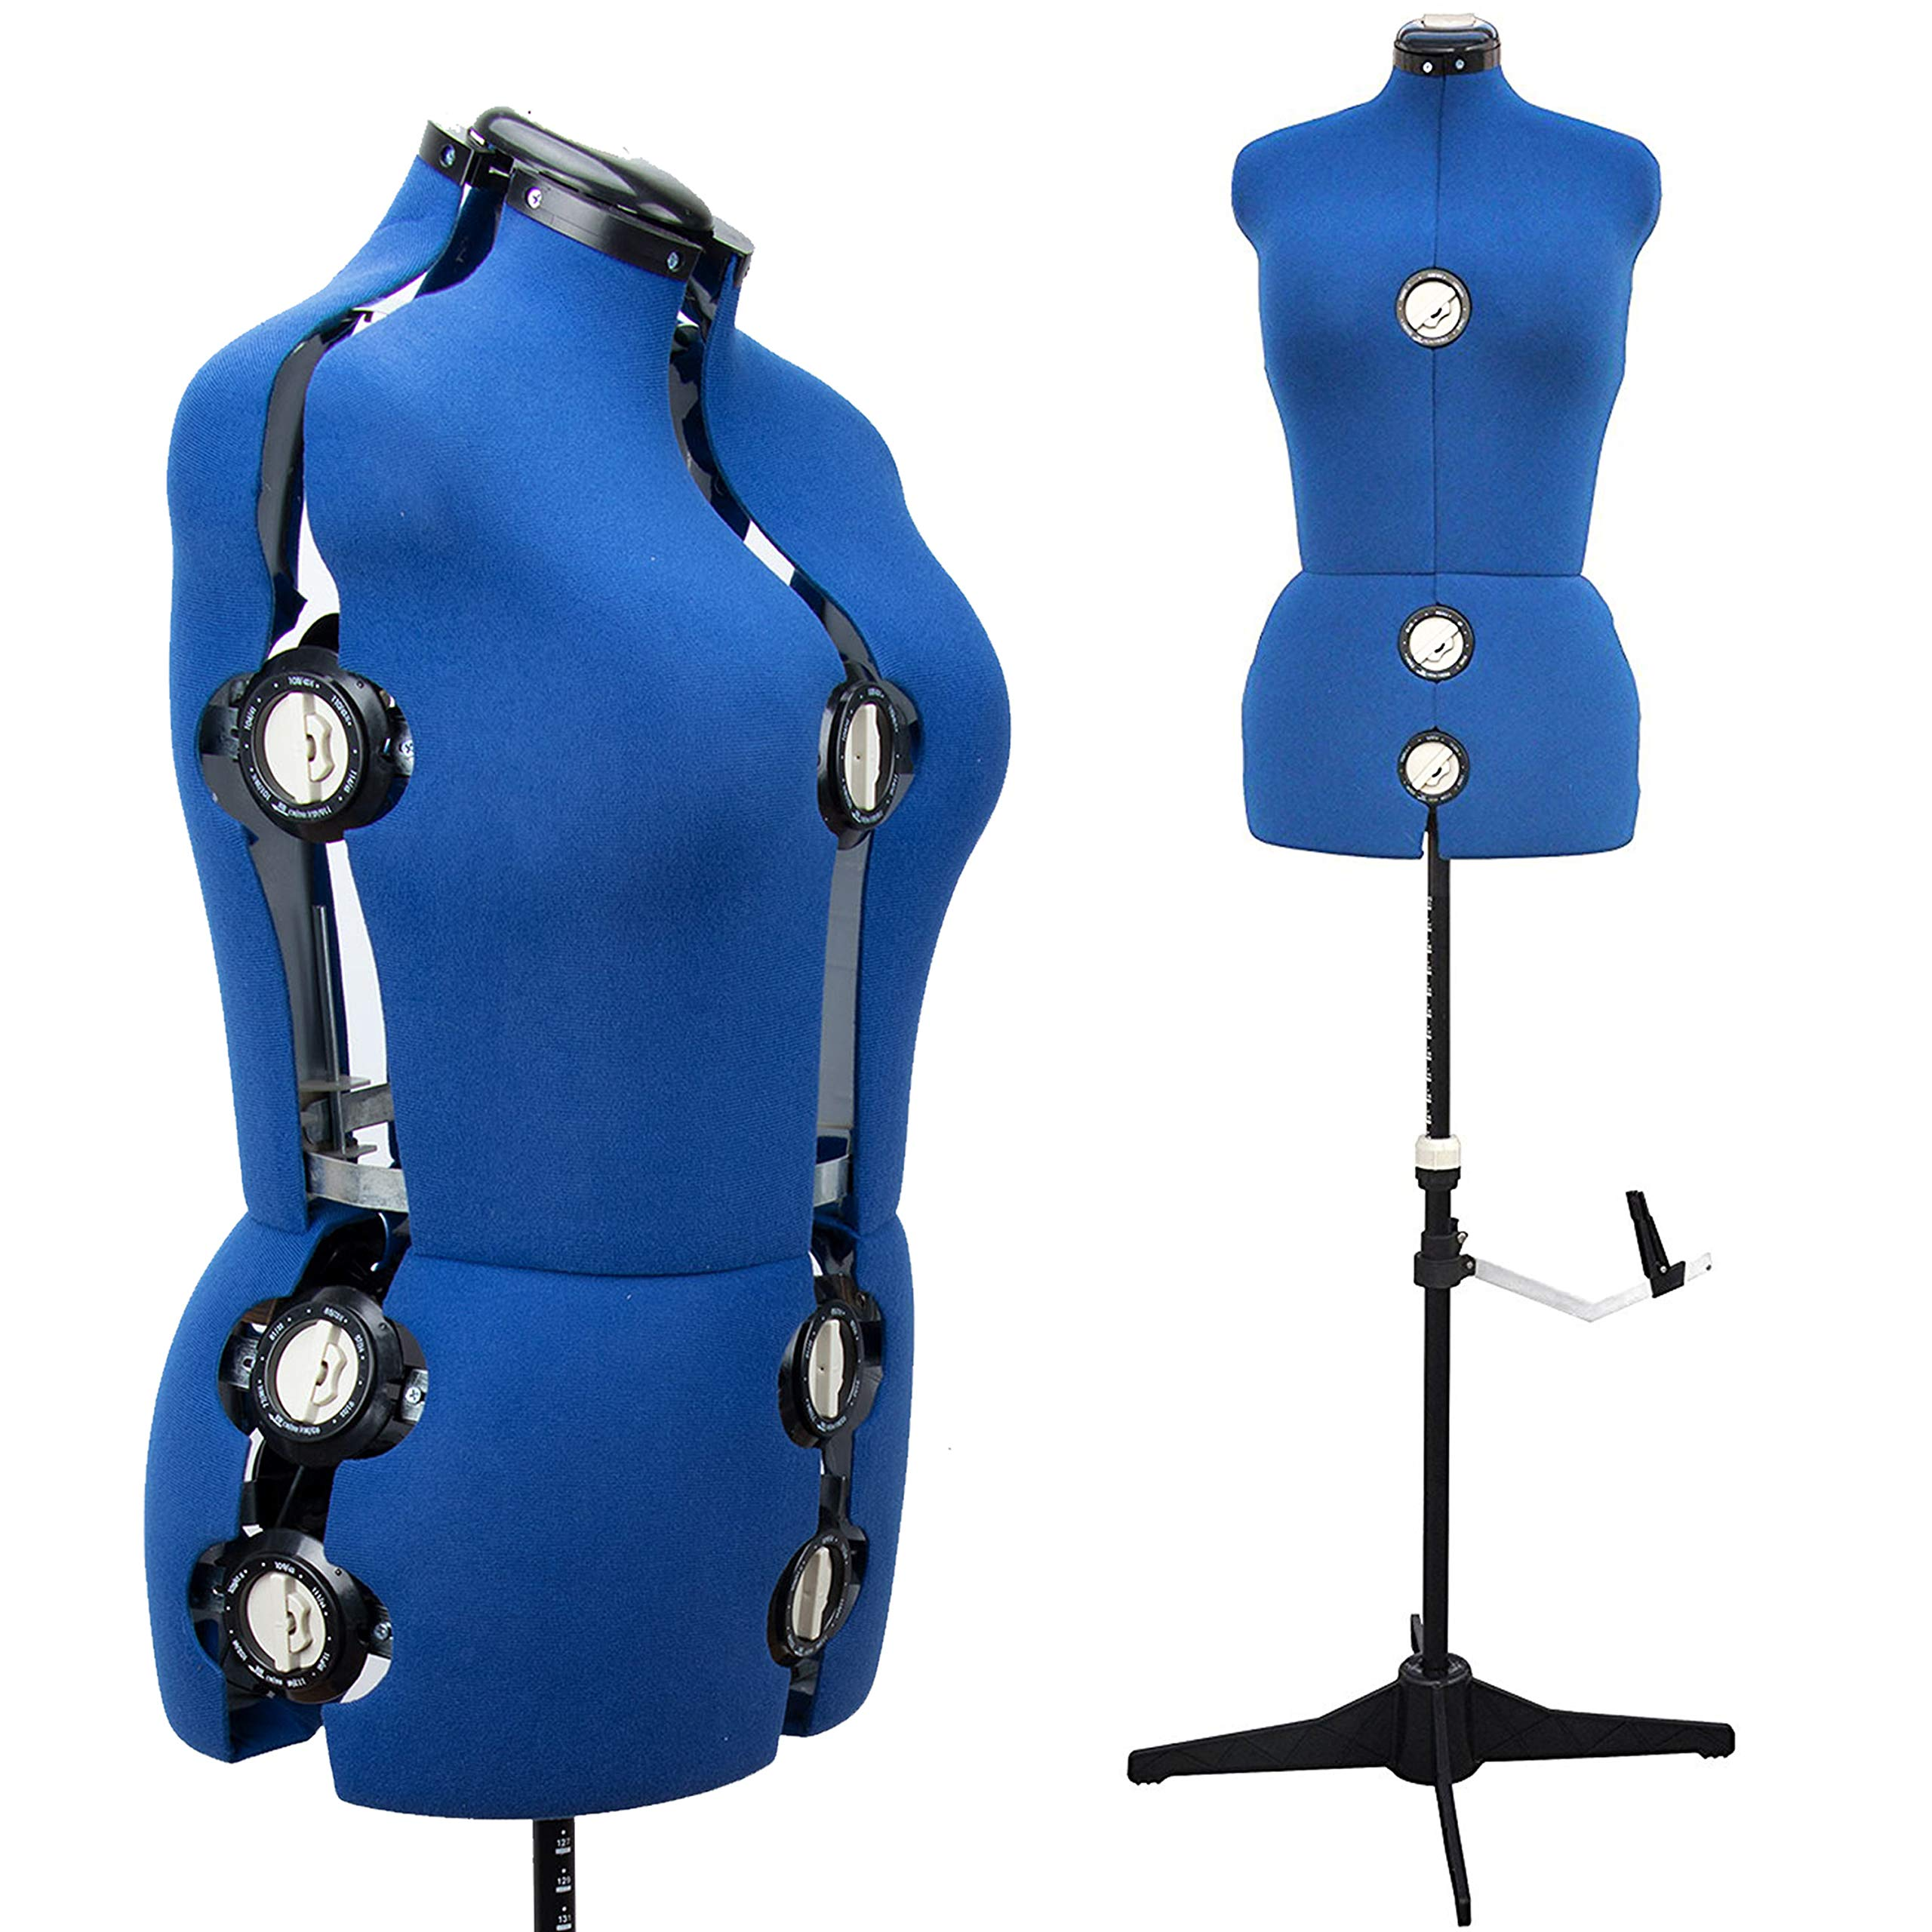 13 Dials Female Fabric Adjustable Mannequin Dress Form for Sewing, Mannequin Body Torso with Tri-Pod Stand, Up to 70'' Shoulder Height. (Large) by BHD BEAUTY